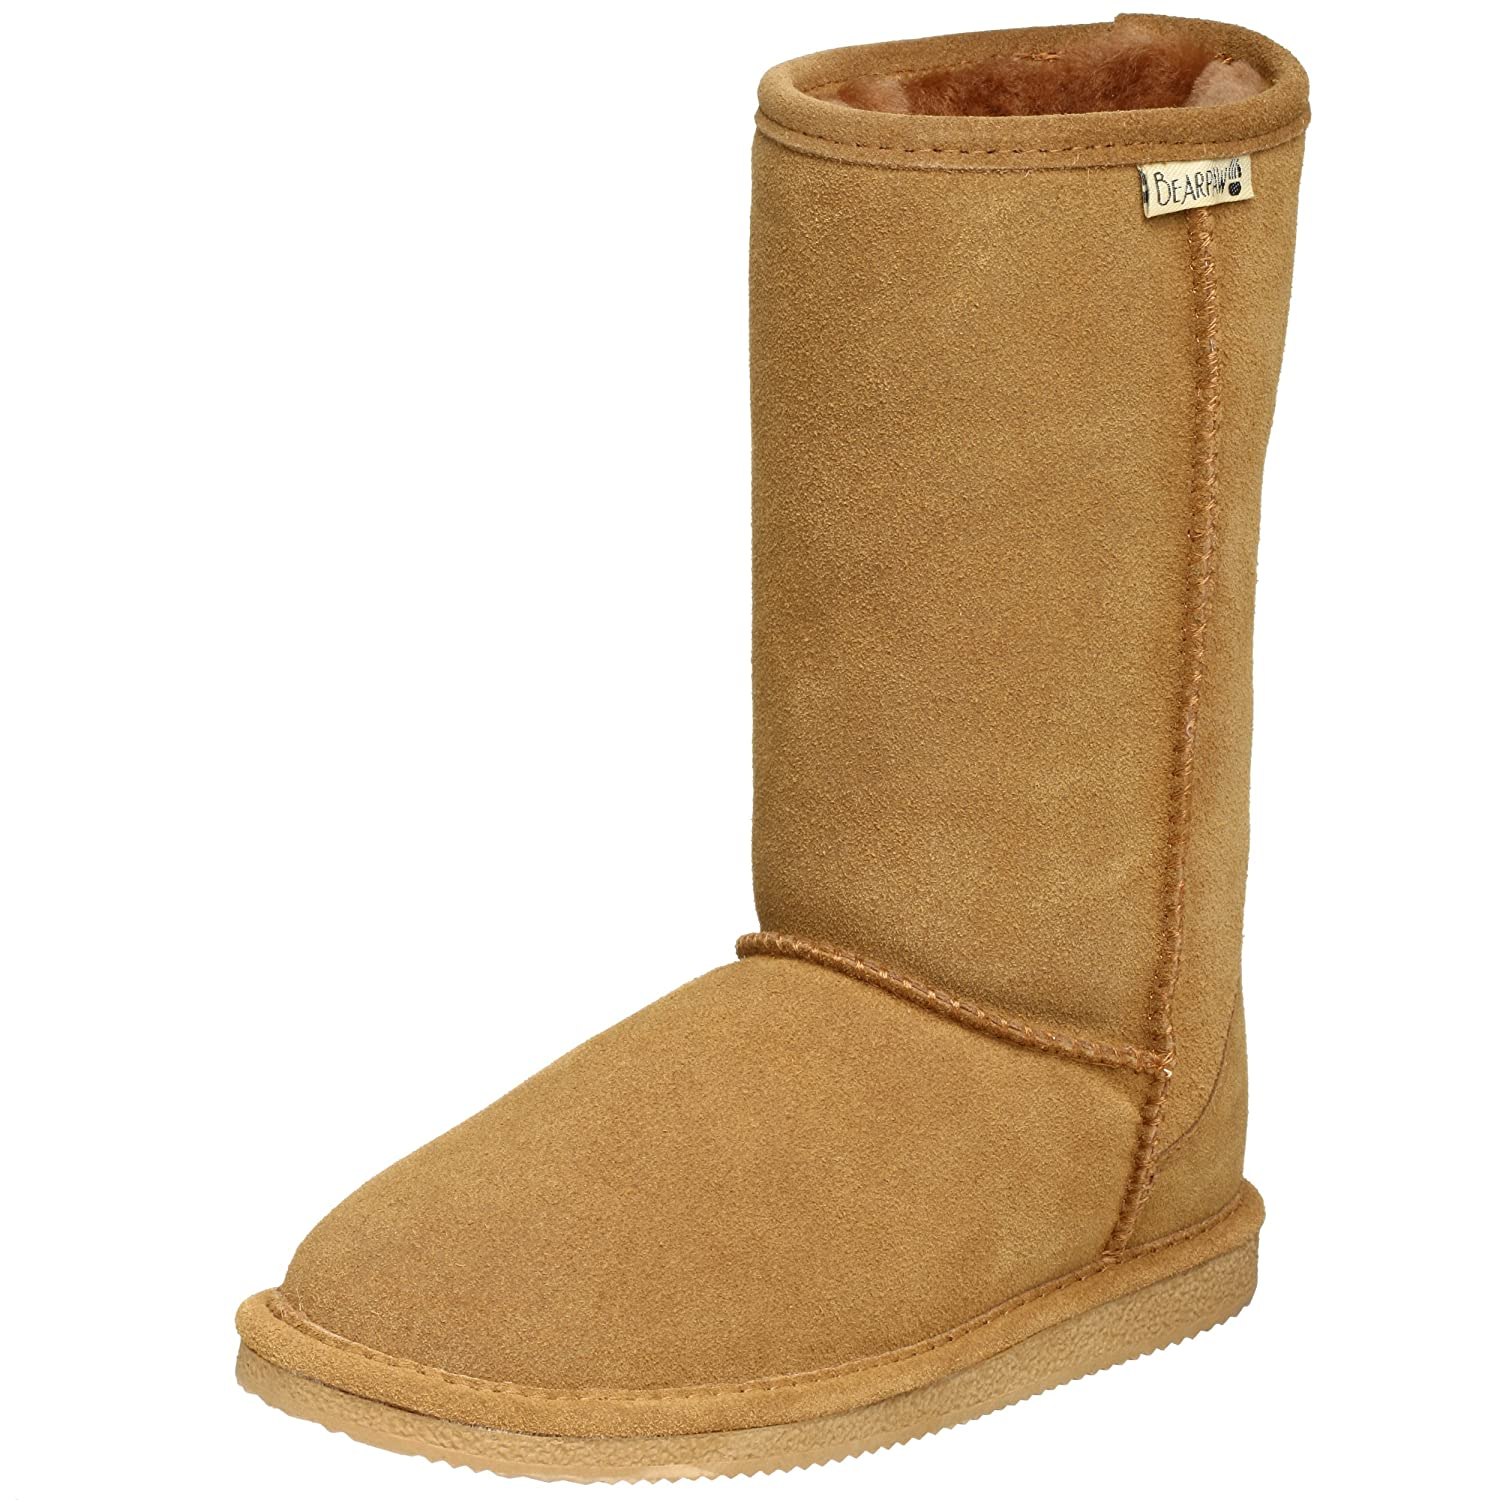 how much do uggs cost